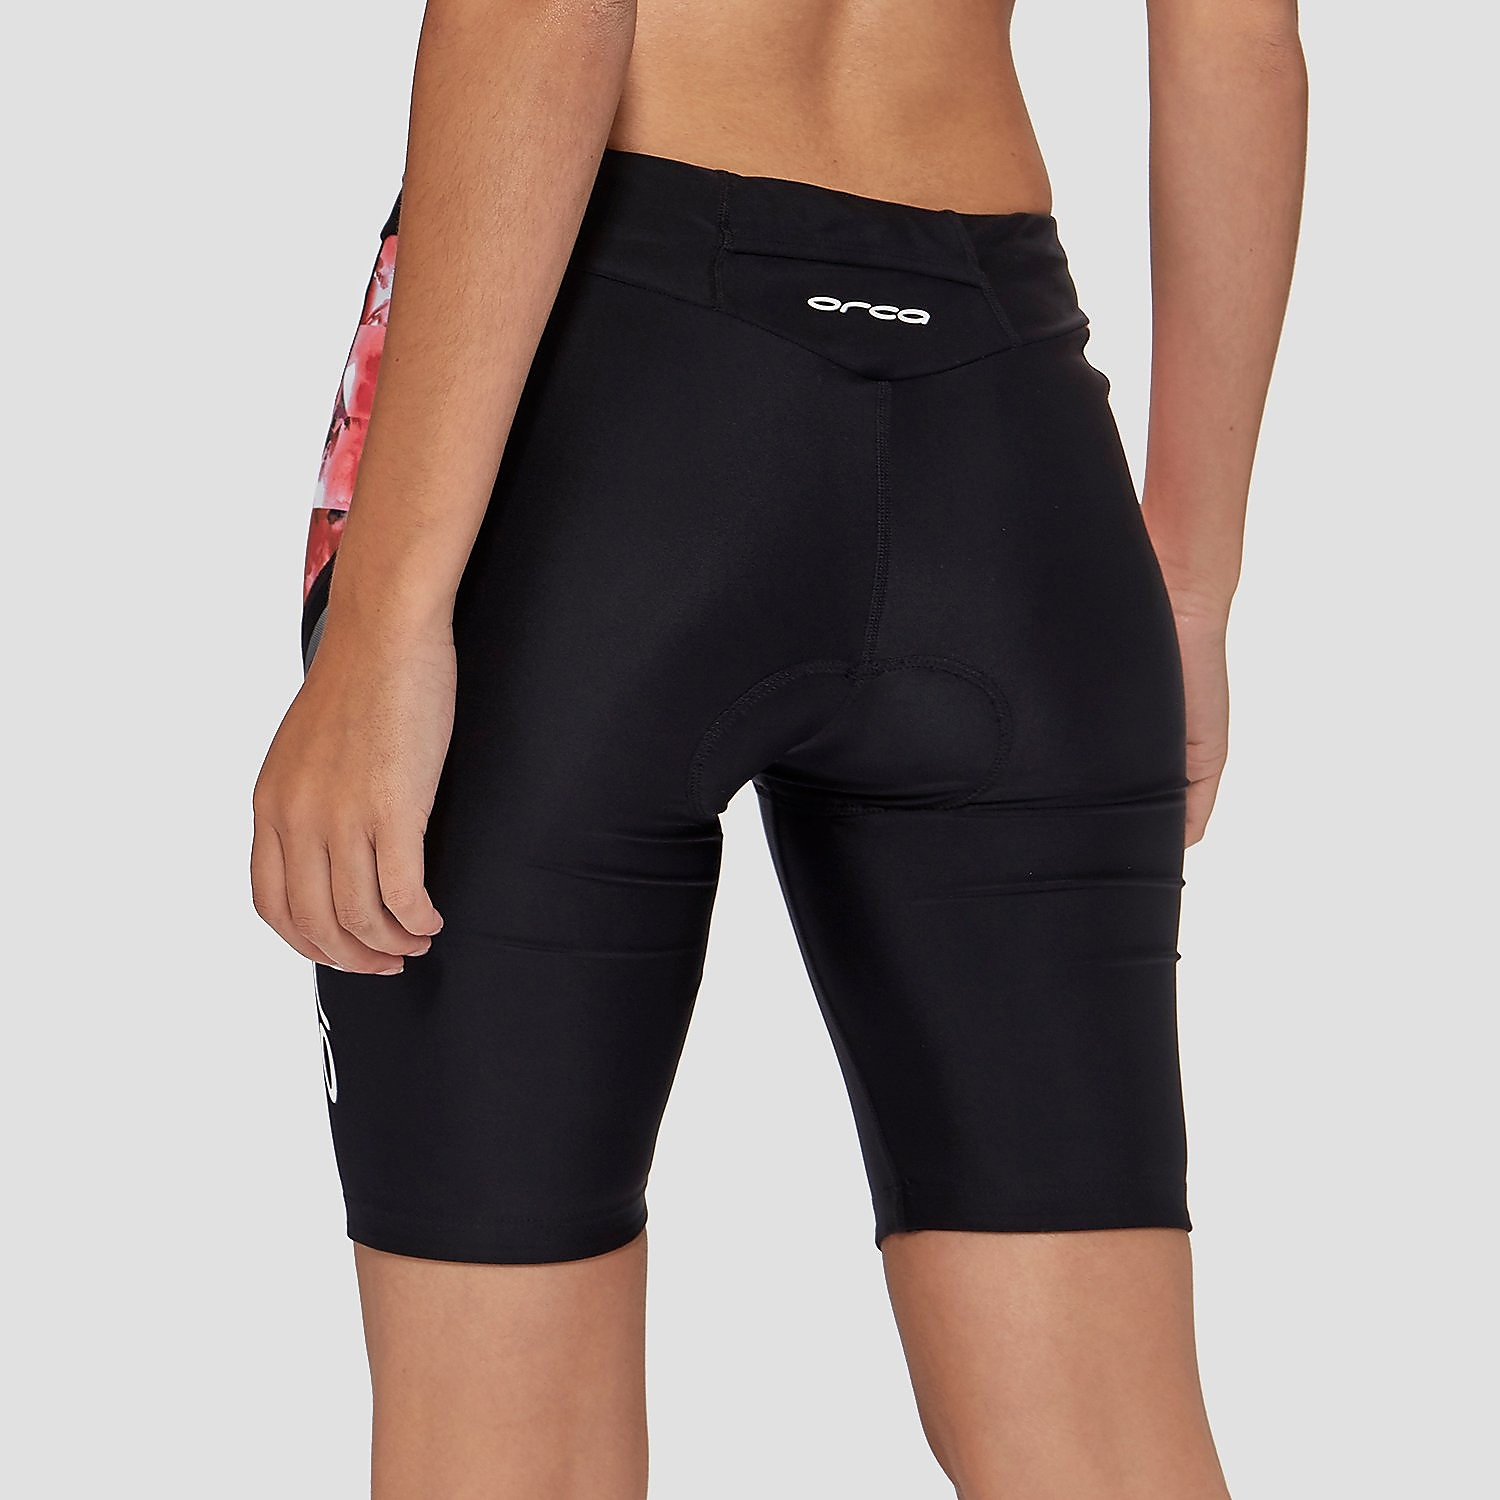 Orca Core Women's Tri Shorts